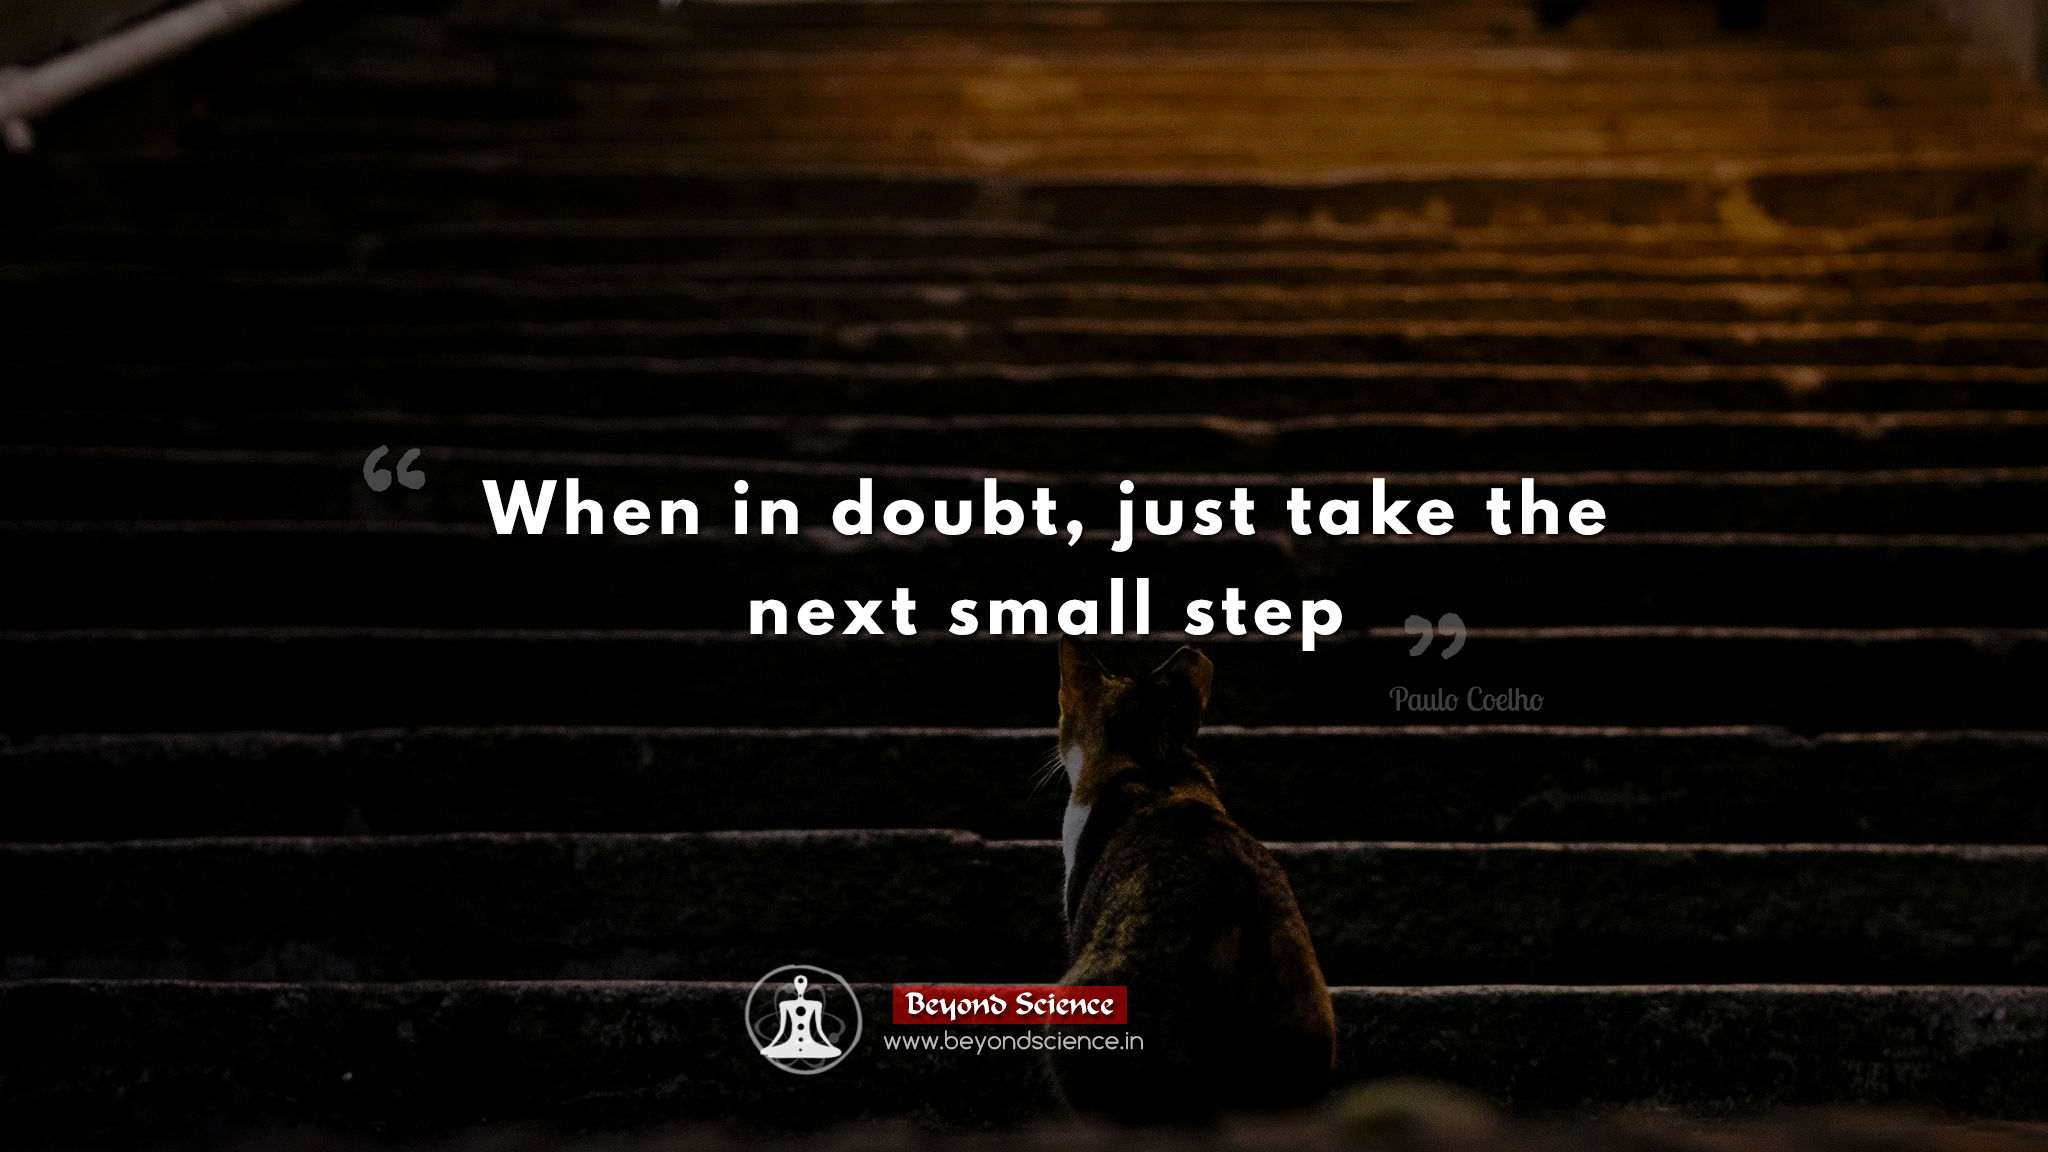 When in doubt just take the next small step